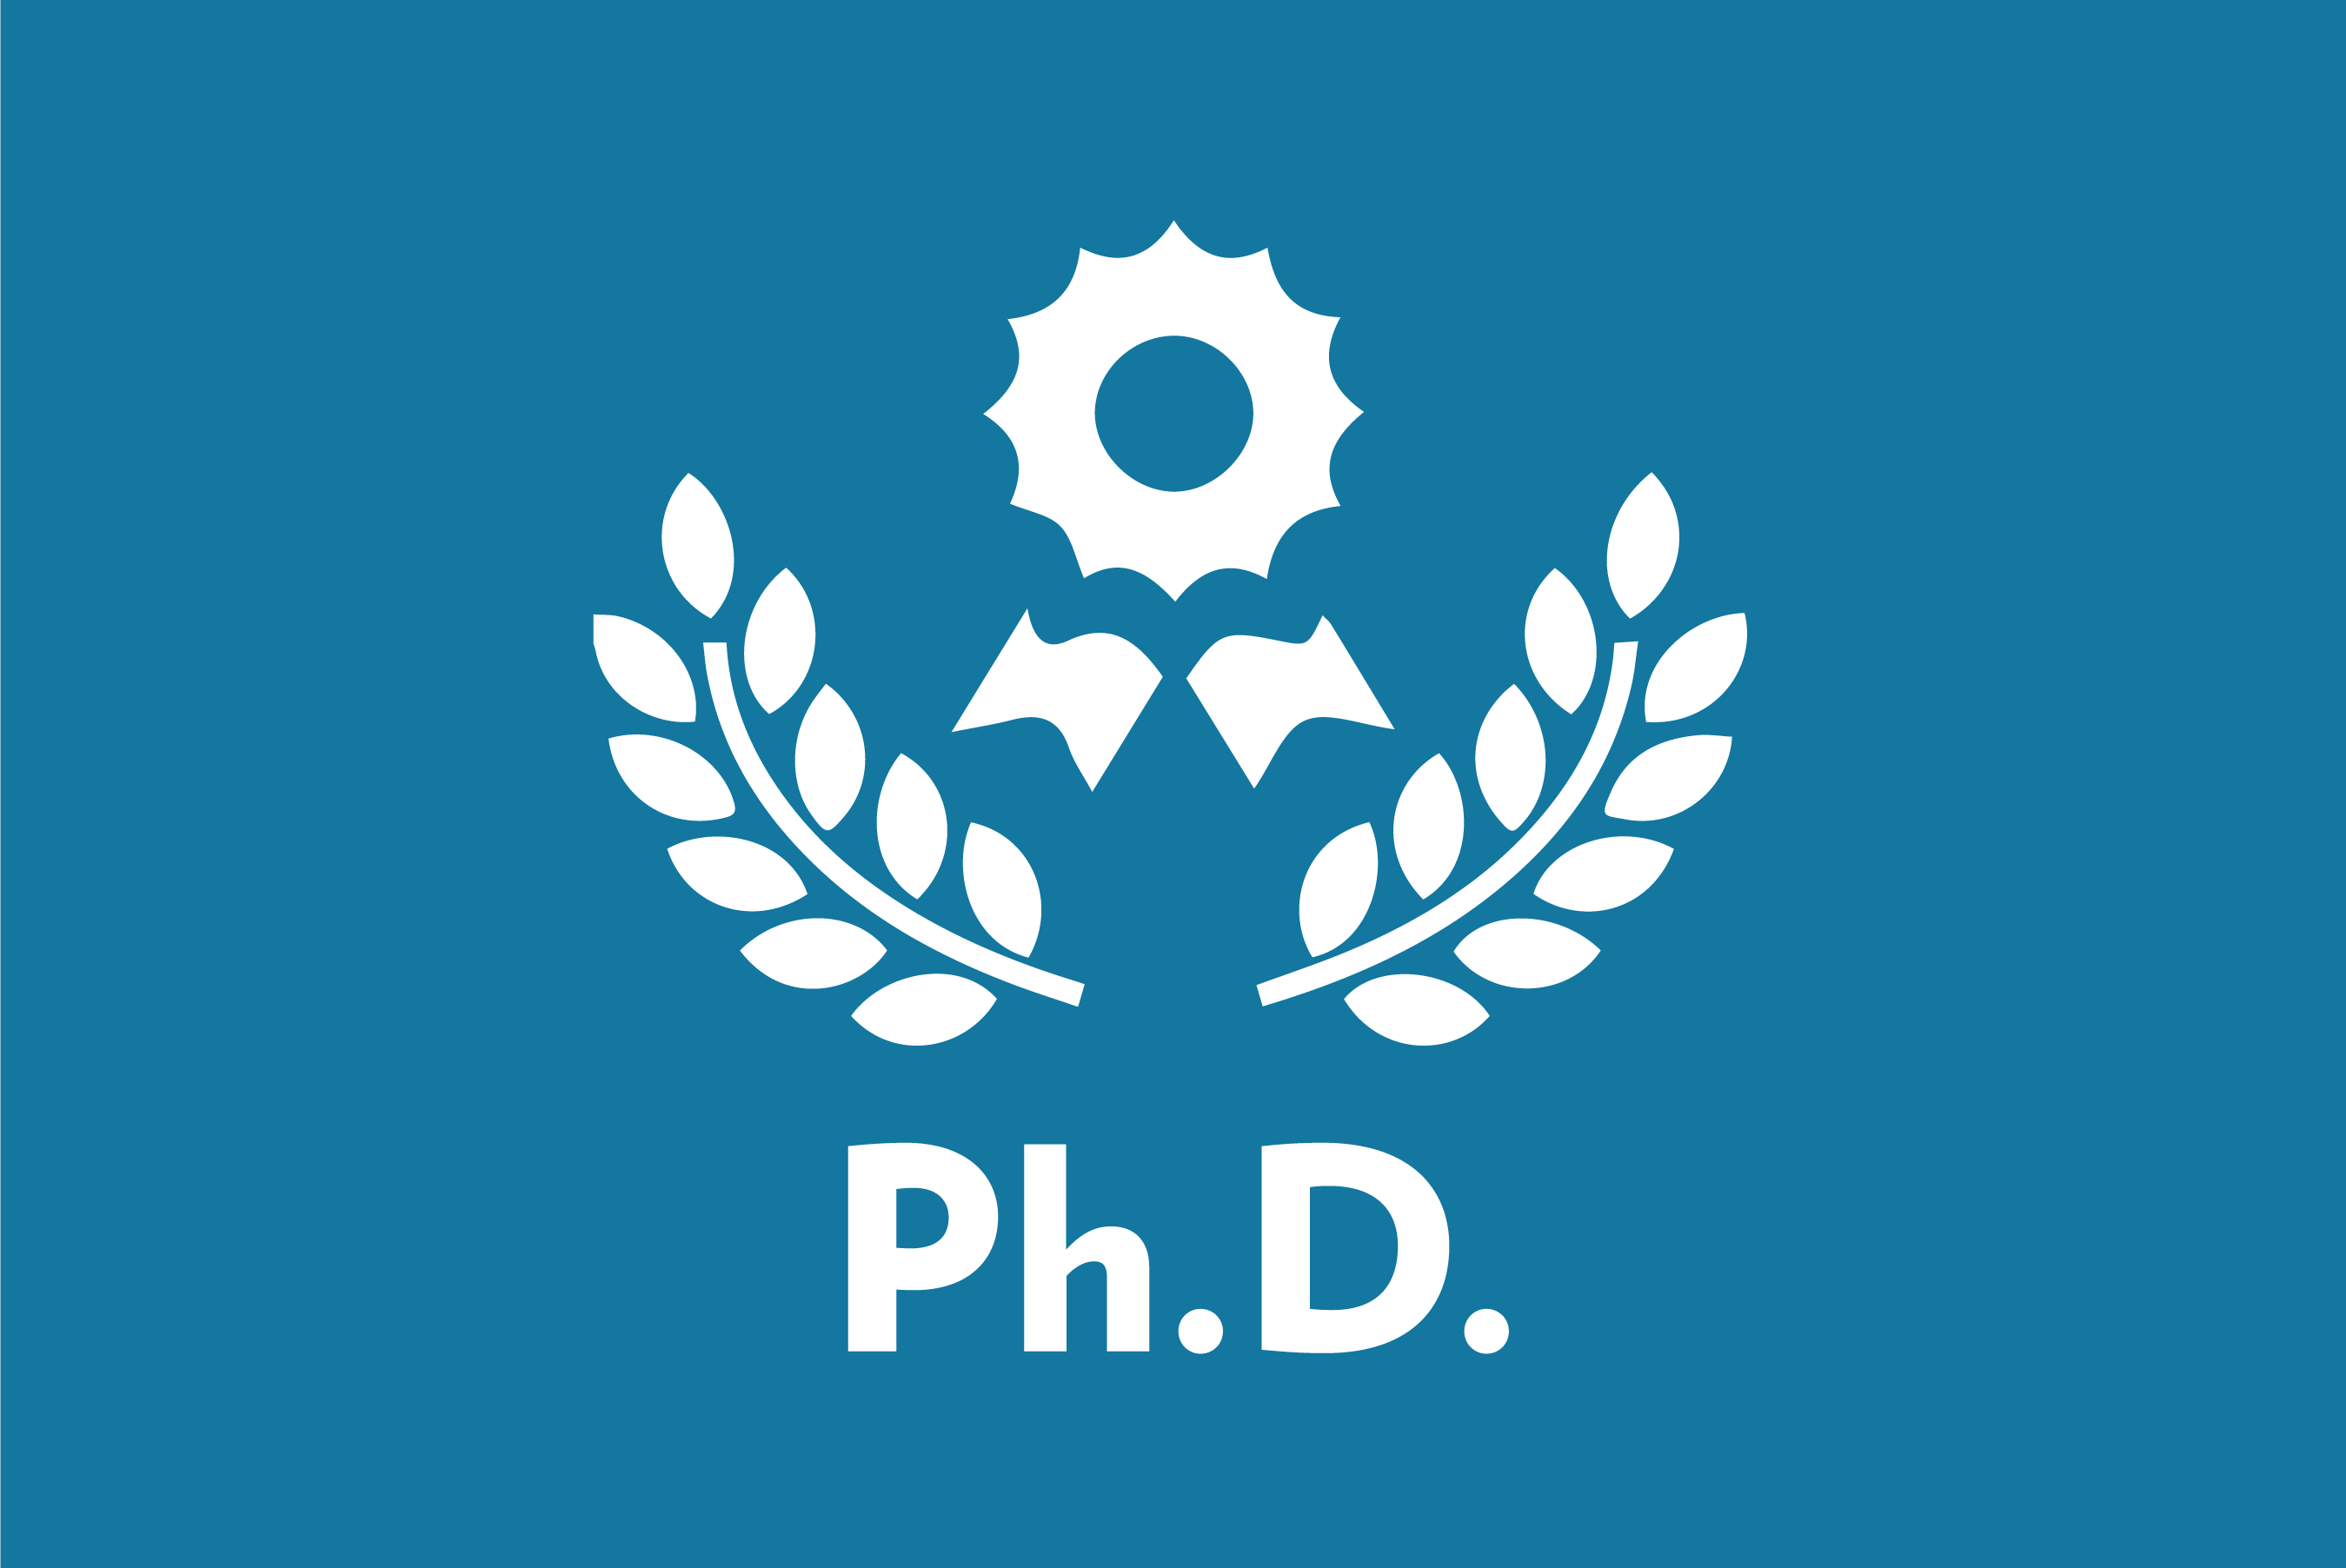 PhD doctor of philosophy icon